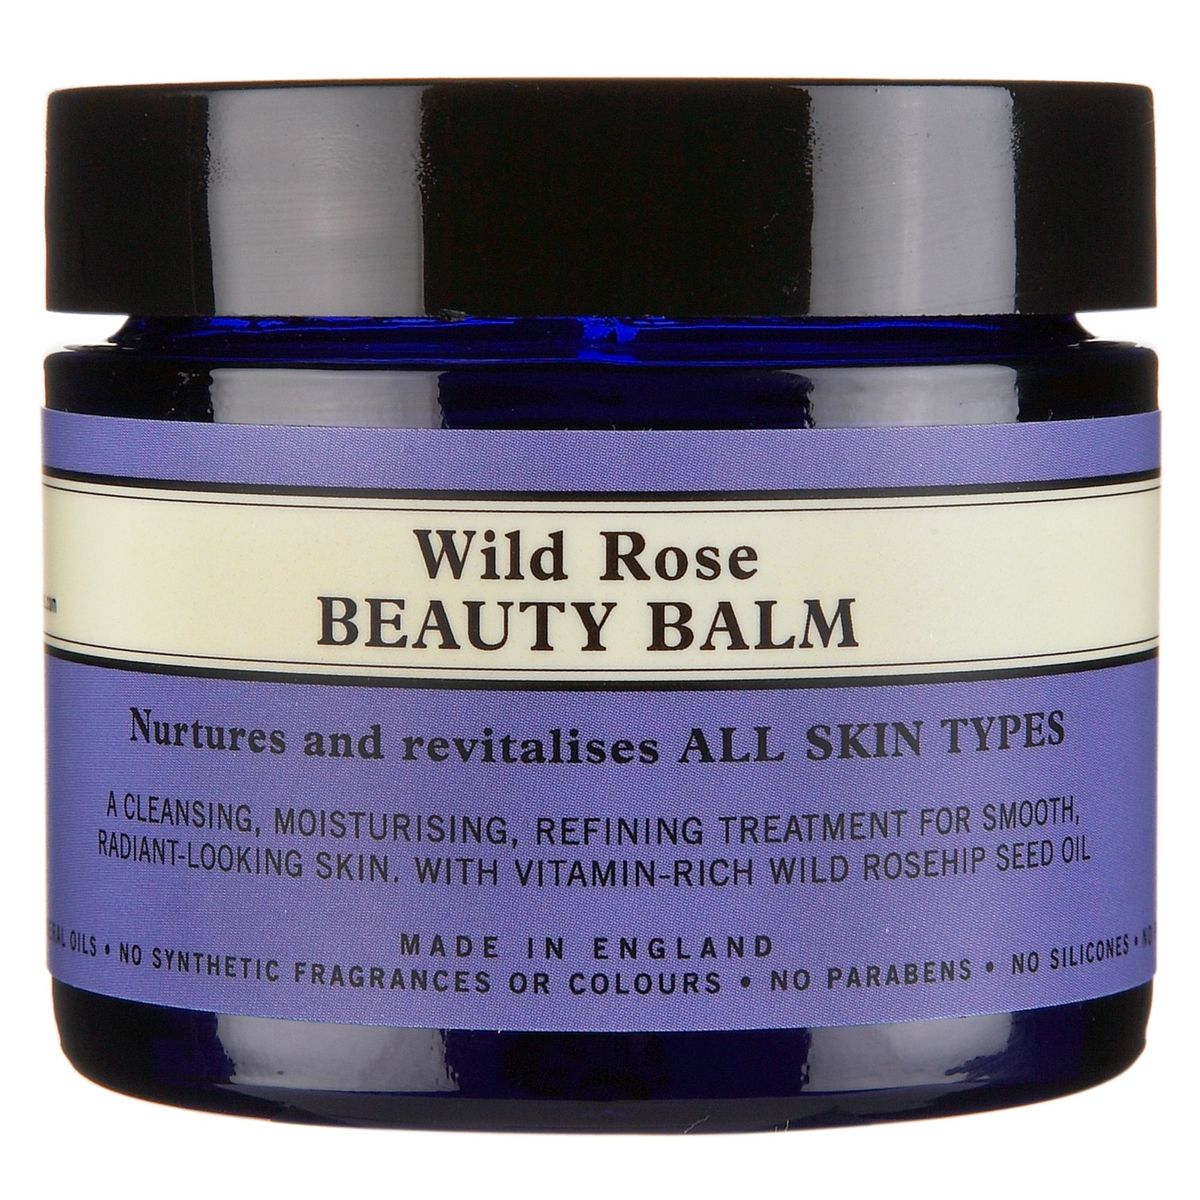 wild-rose-beauty-balm-image_0.jpg